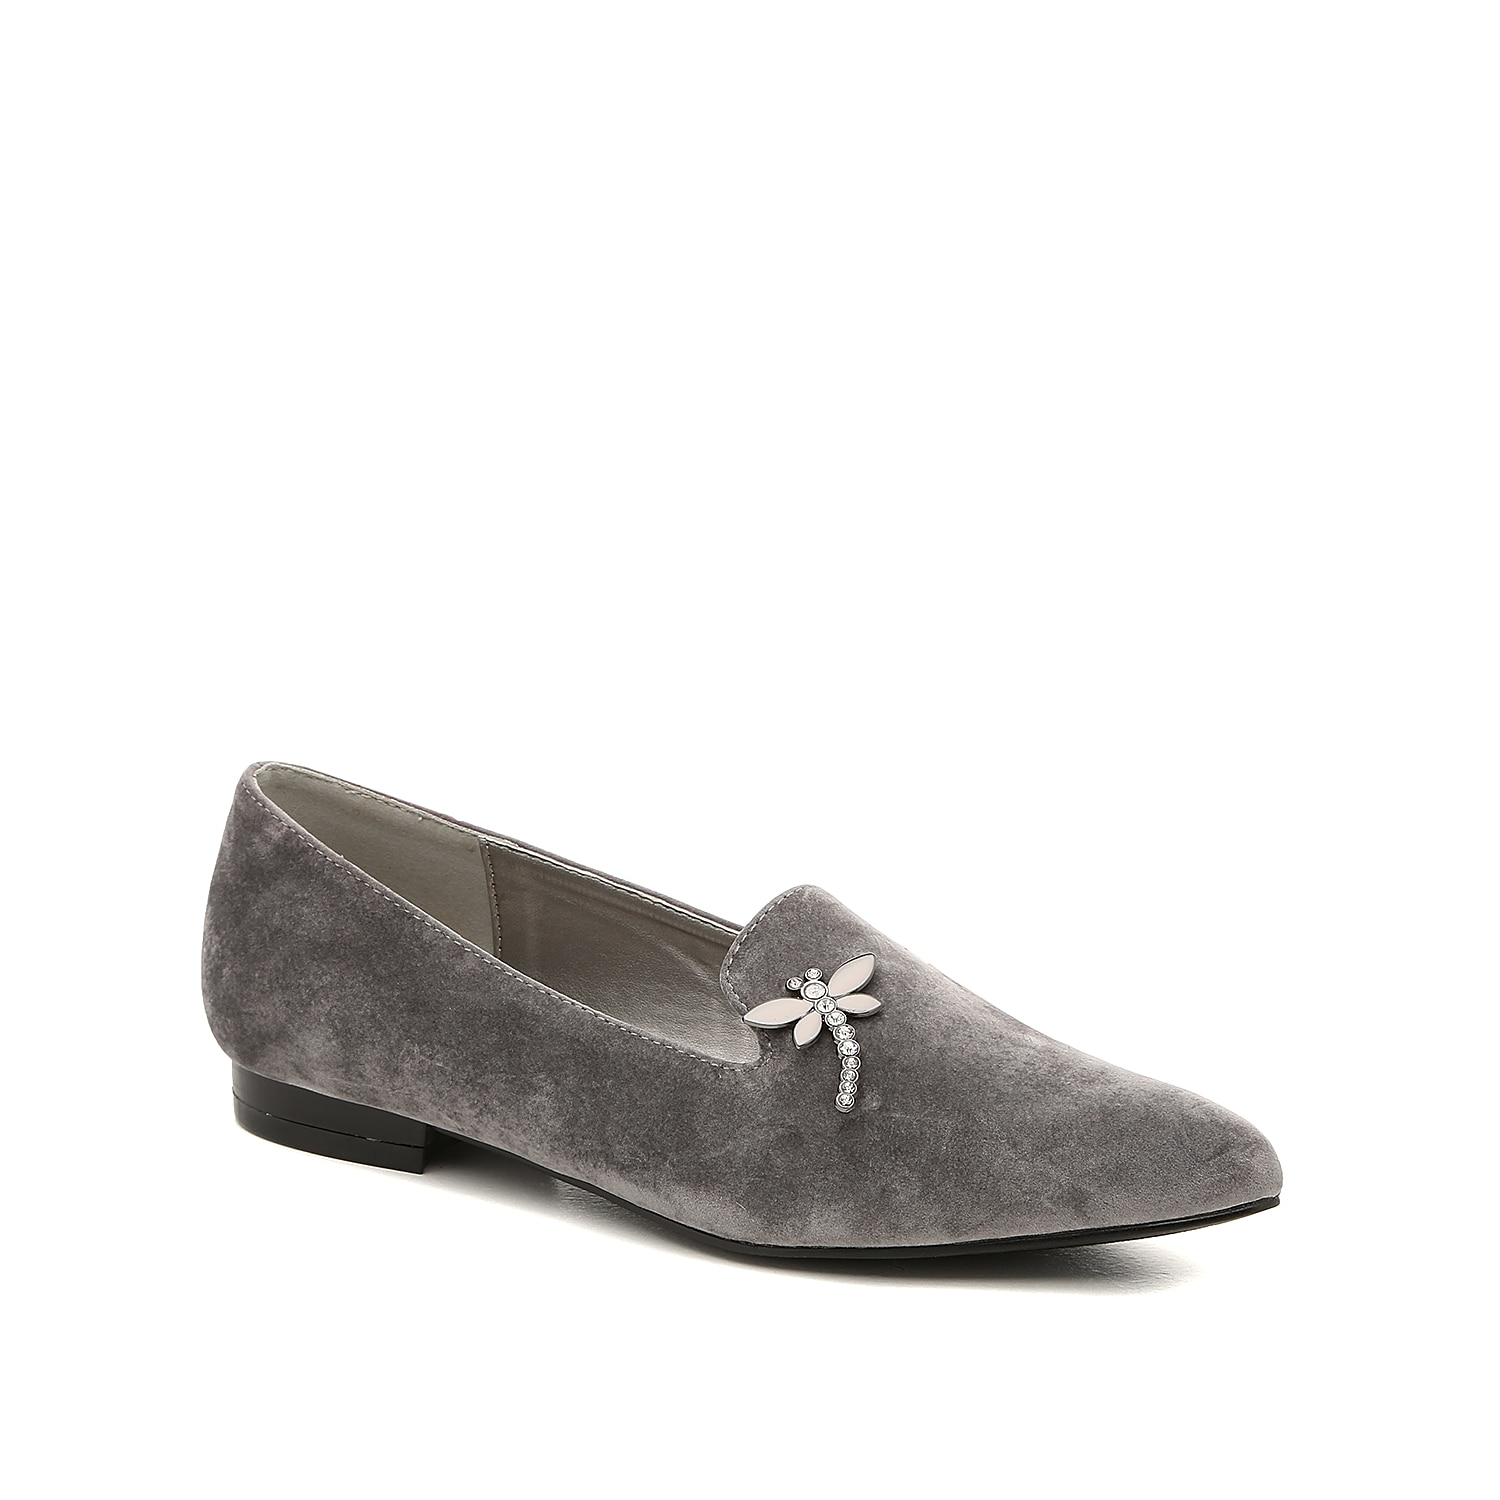 Channel your inner fashionista side when wearing the Dragonfly loafer from Bellini. The velvet upper, cushioned footbed, and dragonfly brooch will give your ensemble the perfect classy touch!